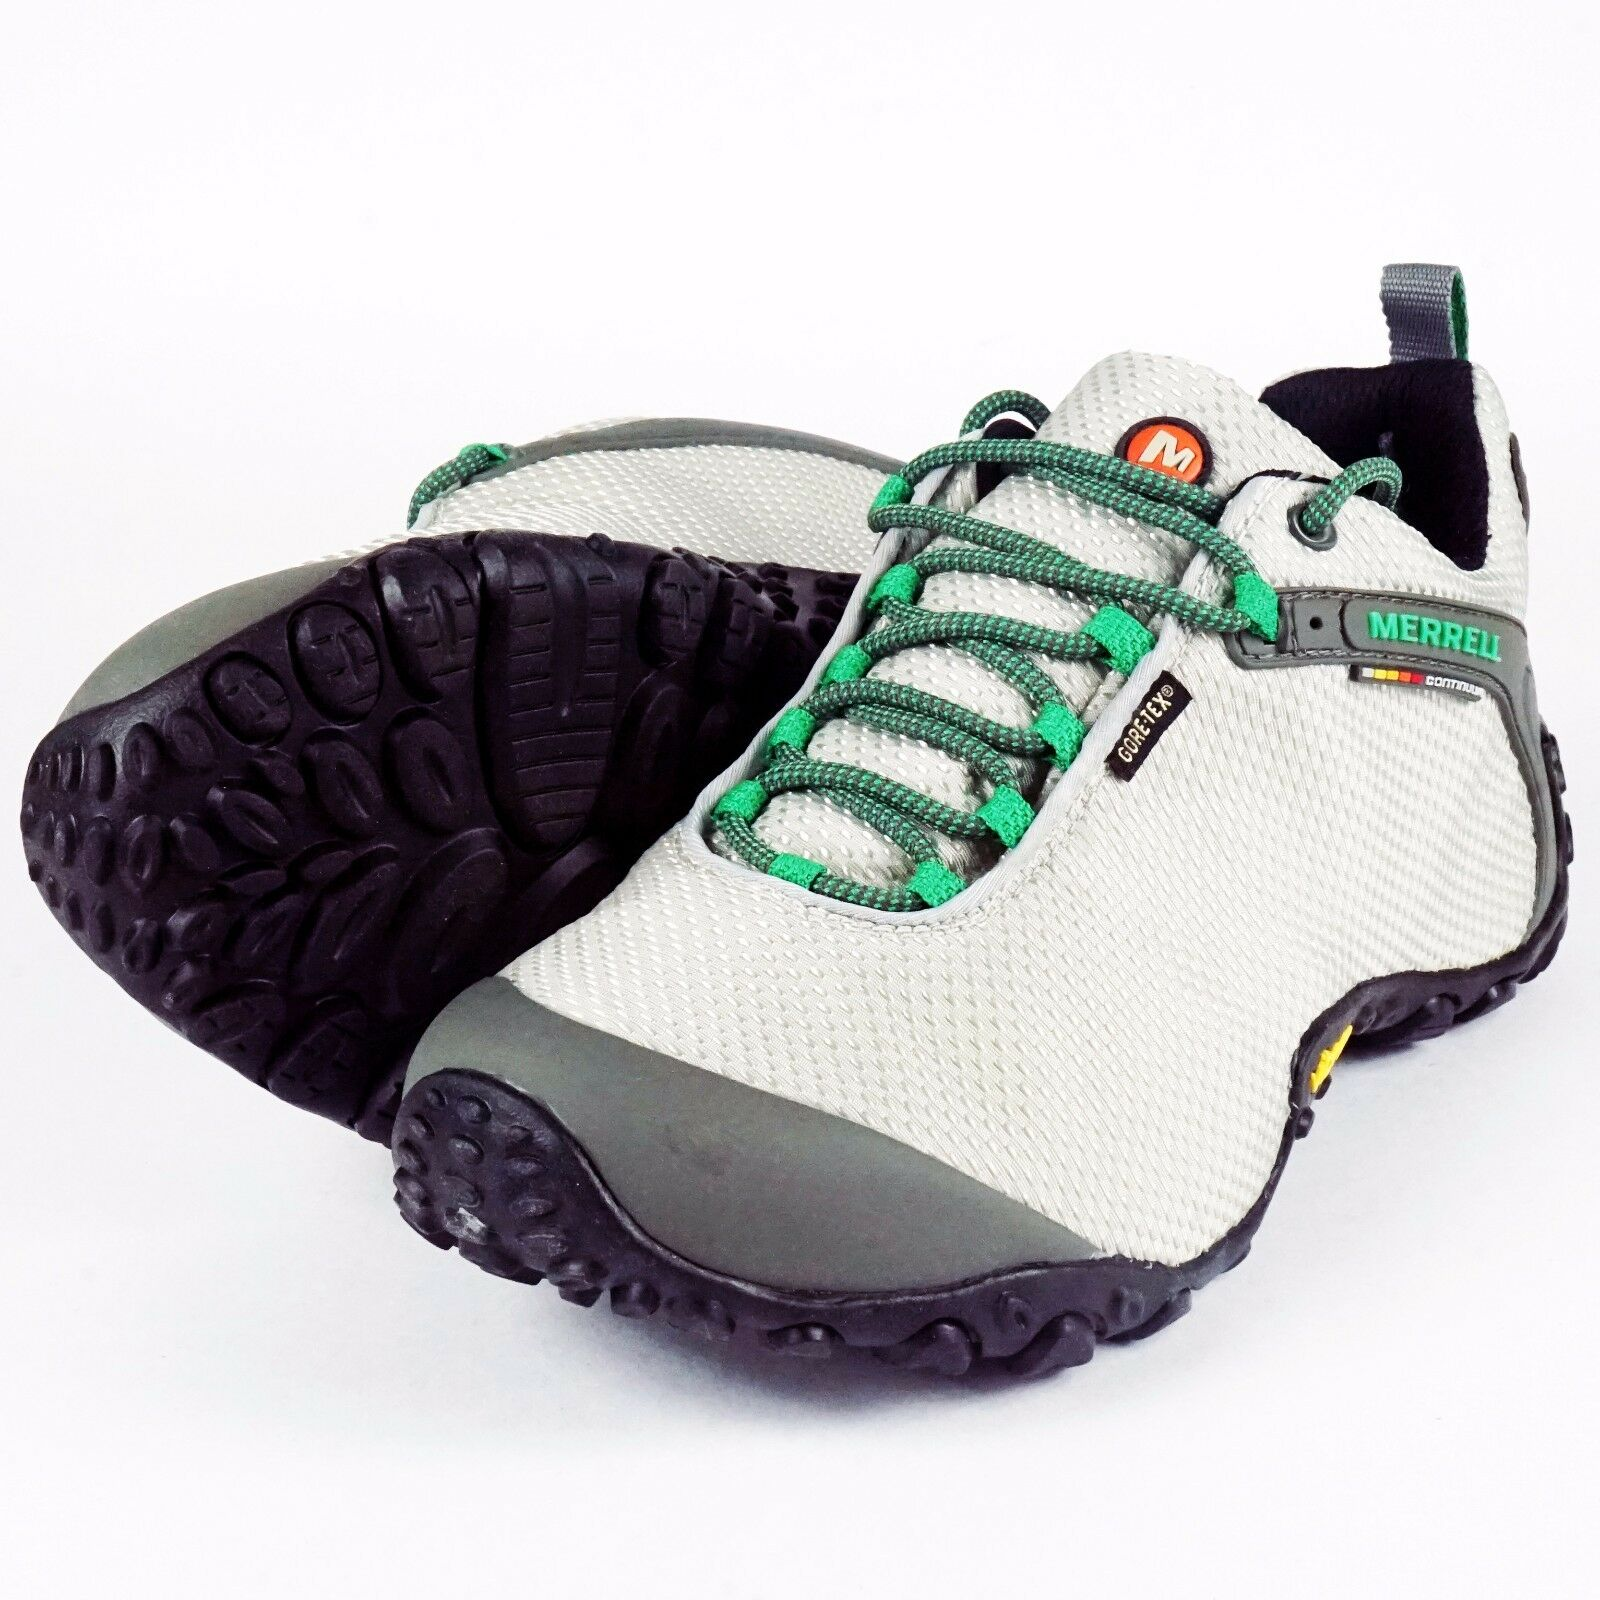 127990ceb Merrell Mens Chameleon 2 Storm Gore-Tex Shoes Walking Trail Trekking Shoes  10.5 фото